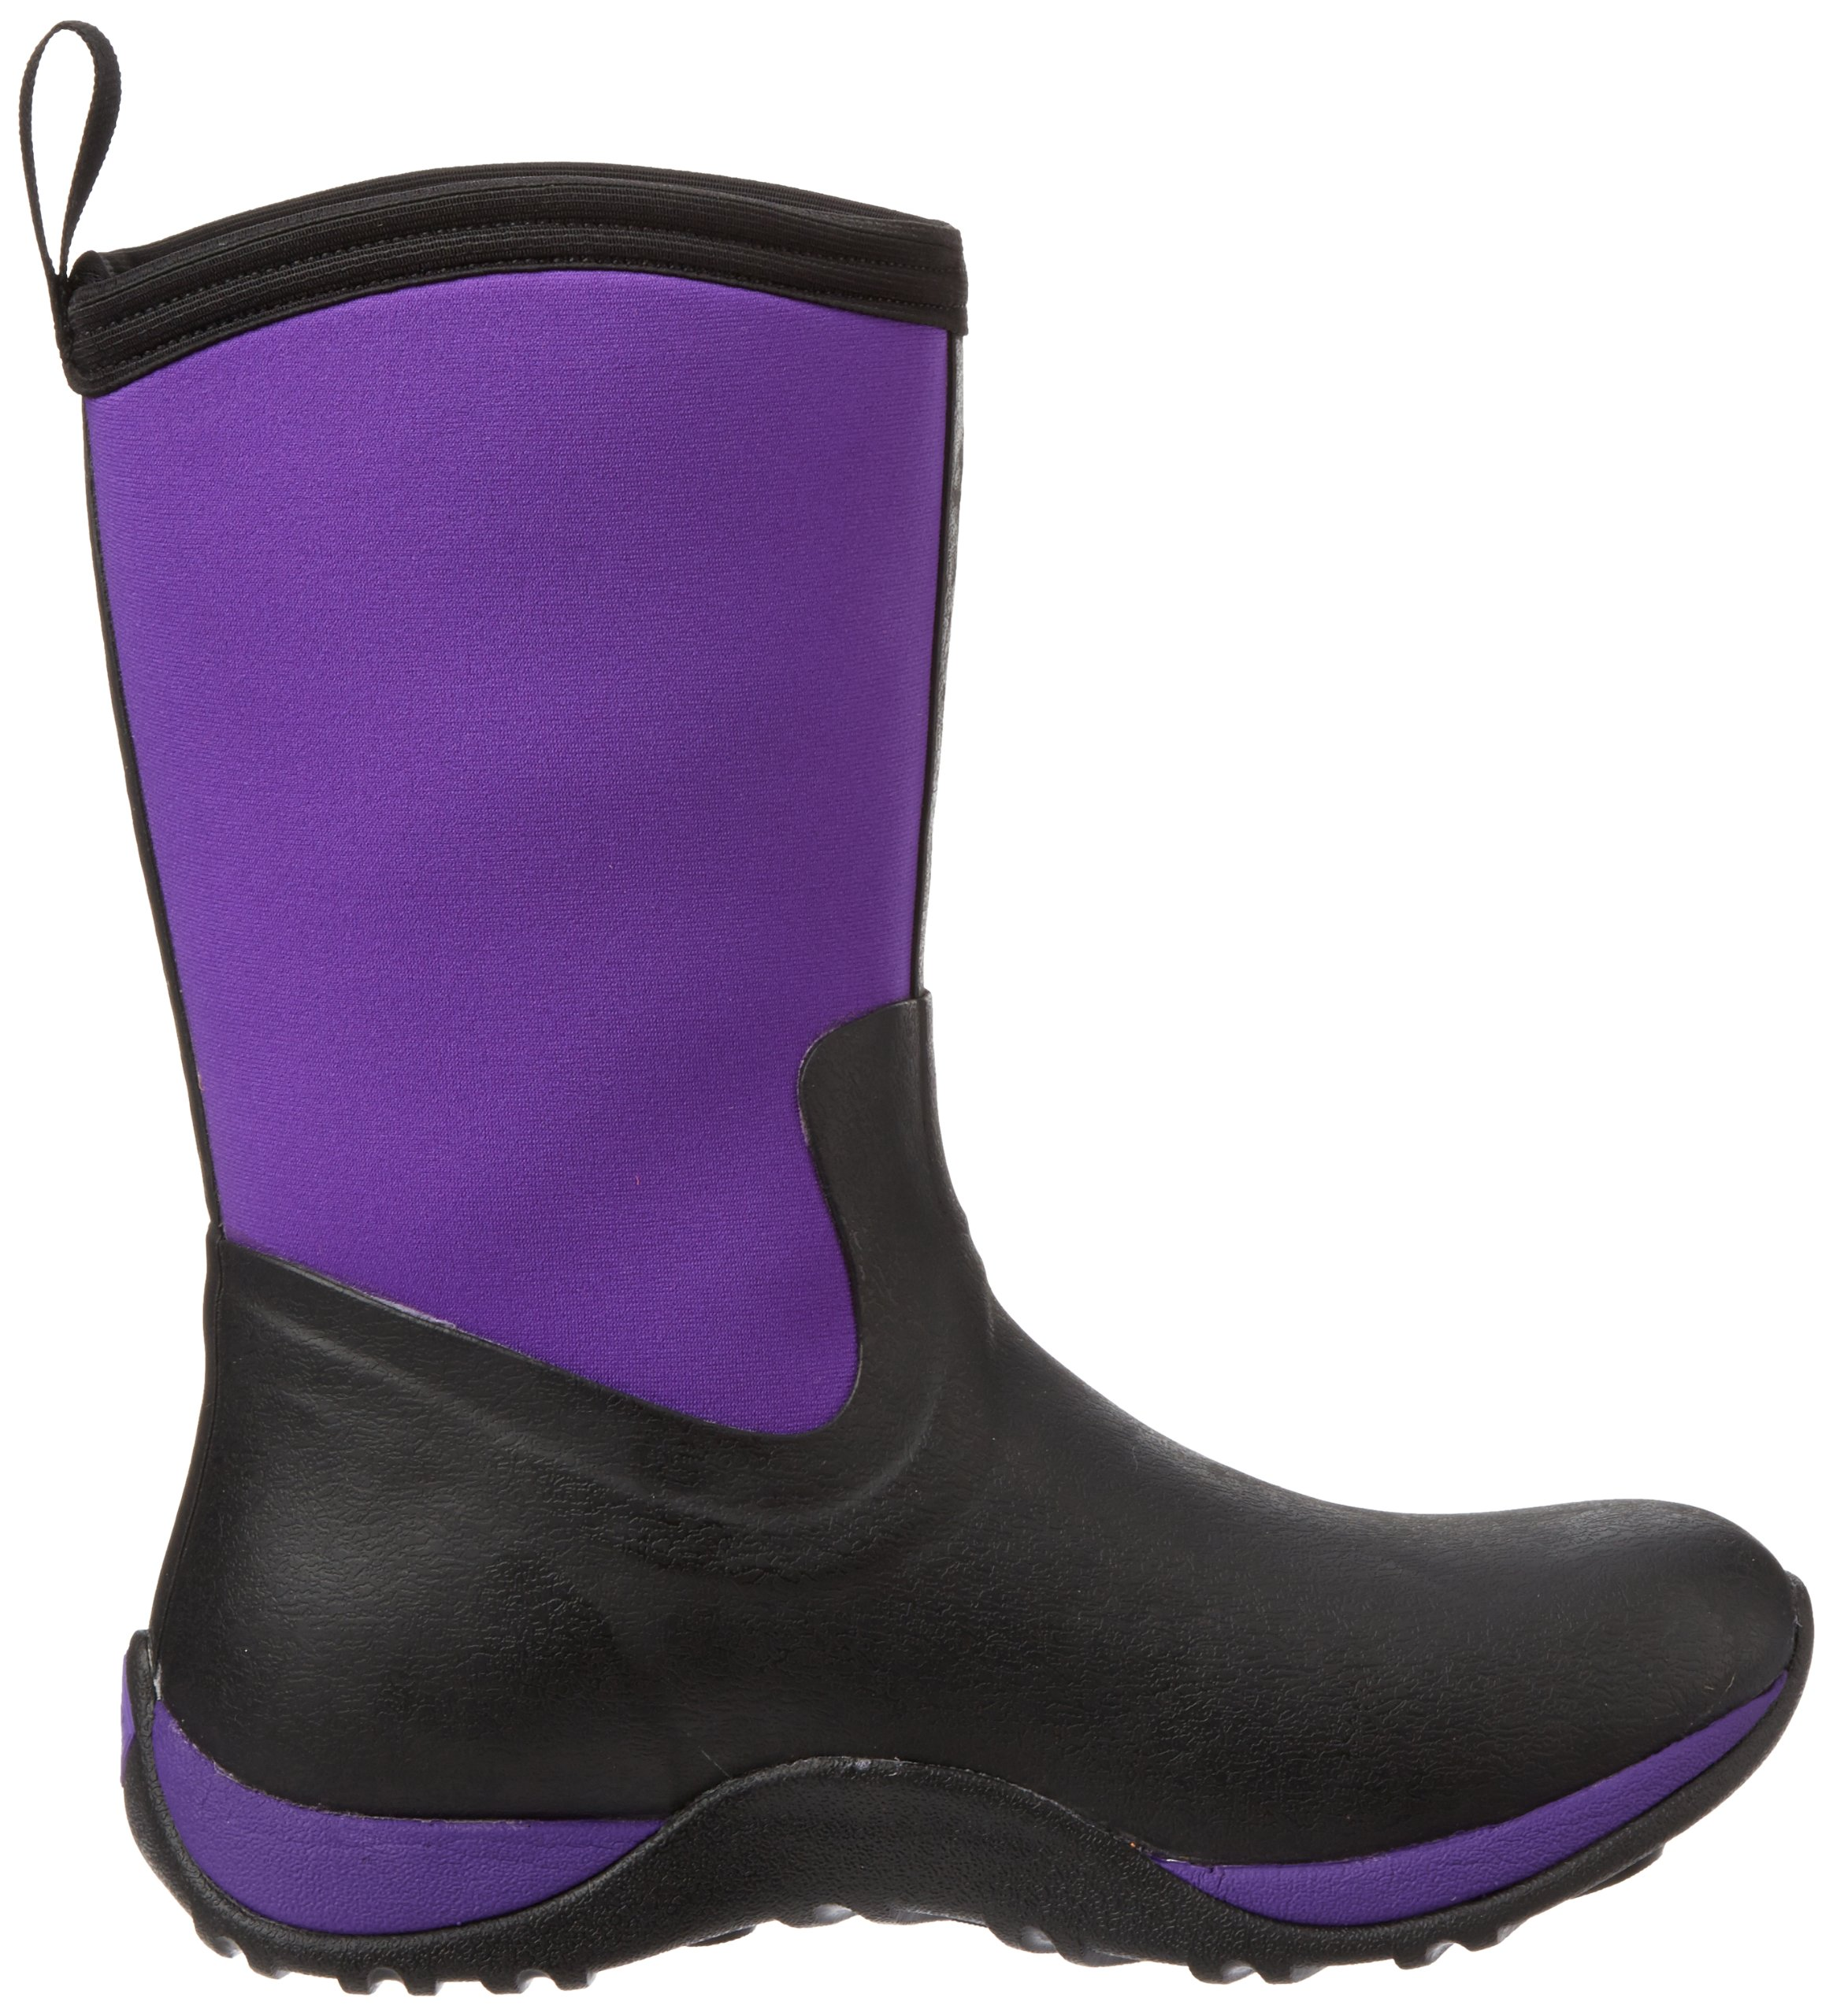 Muck Arctic Weekend Mid-Height Rubber Women's Winter Boots by Muck Boot (Image #6)